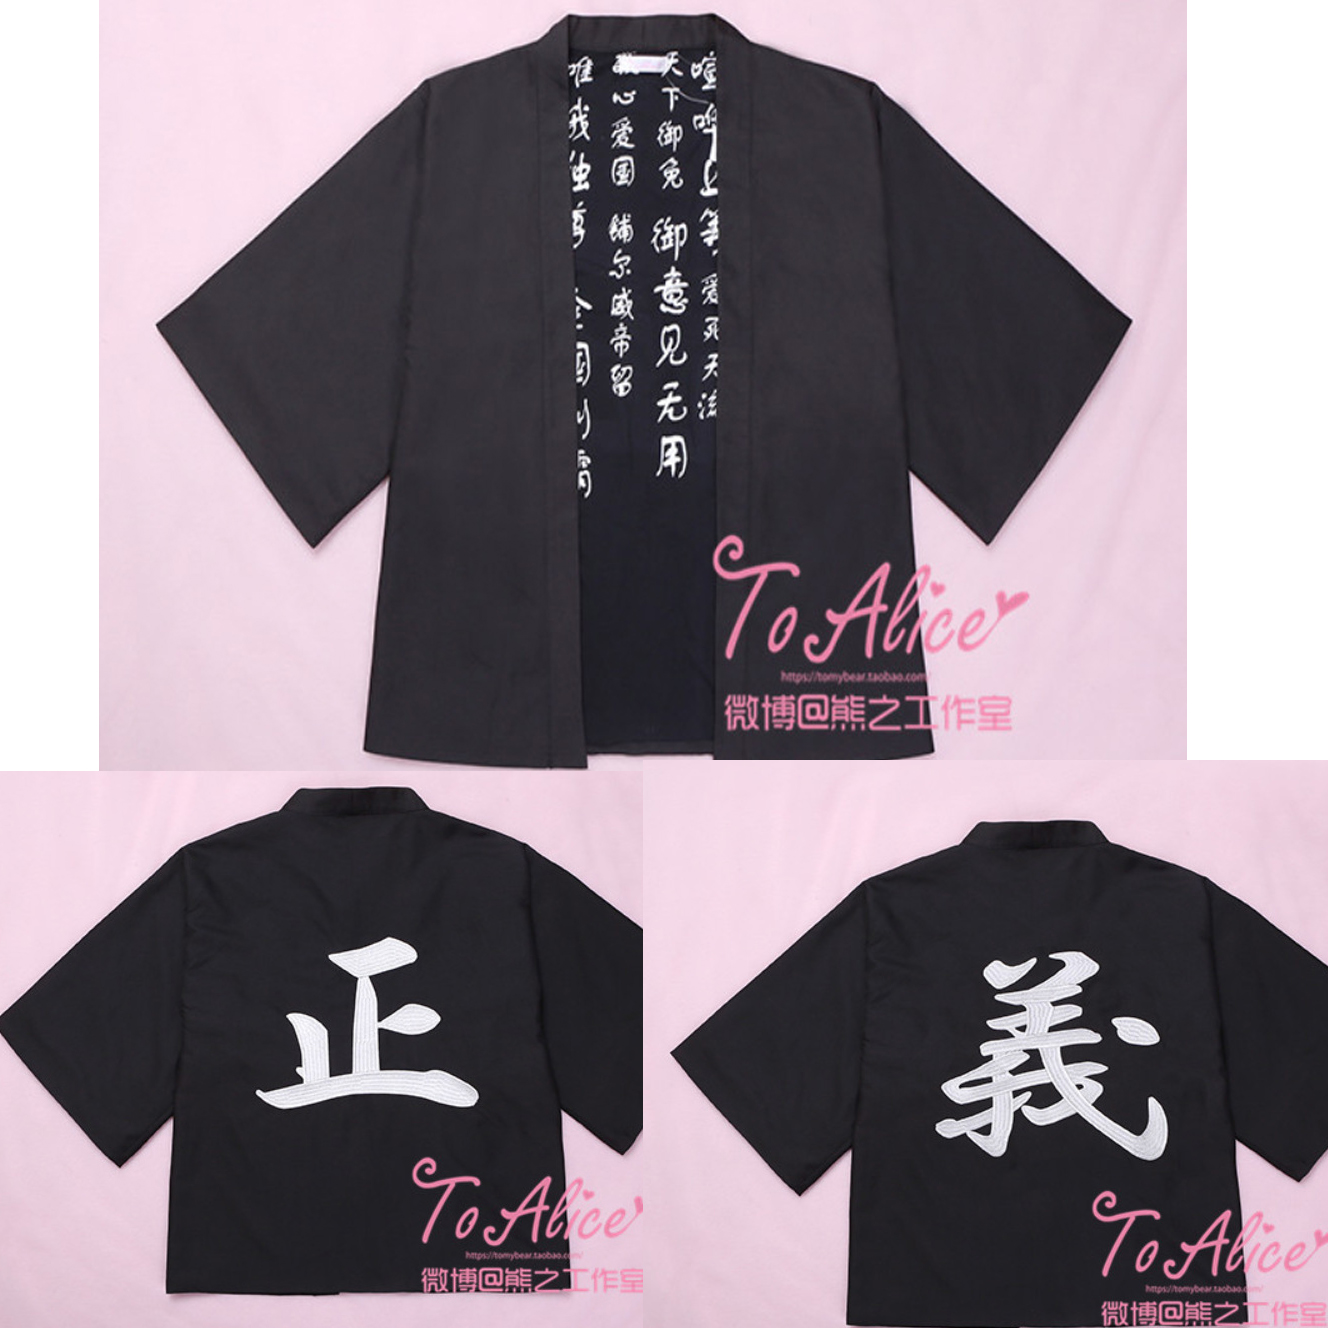 Punctual Japanese Chinese Letter Embroidery Bad/poster/justice Print Funny Kimono Loose Blouse Streetwear Hip Hop Punk Top Shirt Harajuku Price Remains Stable Women's Clothing